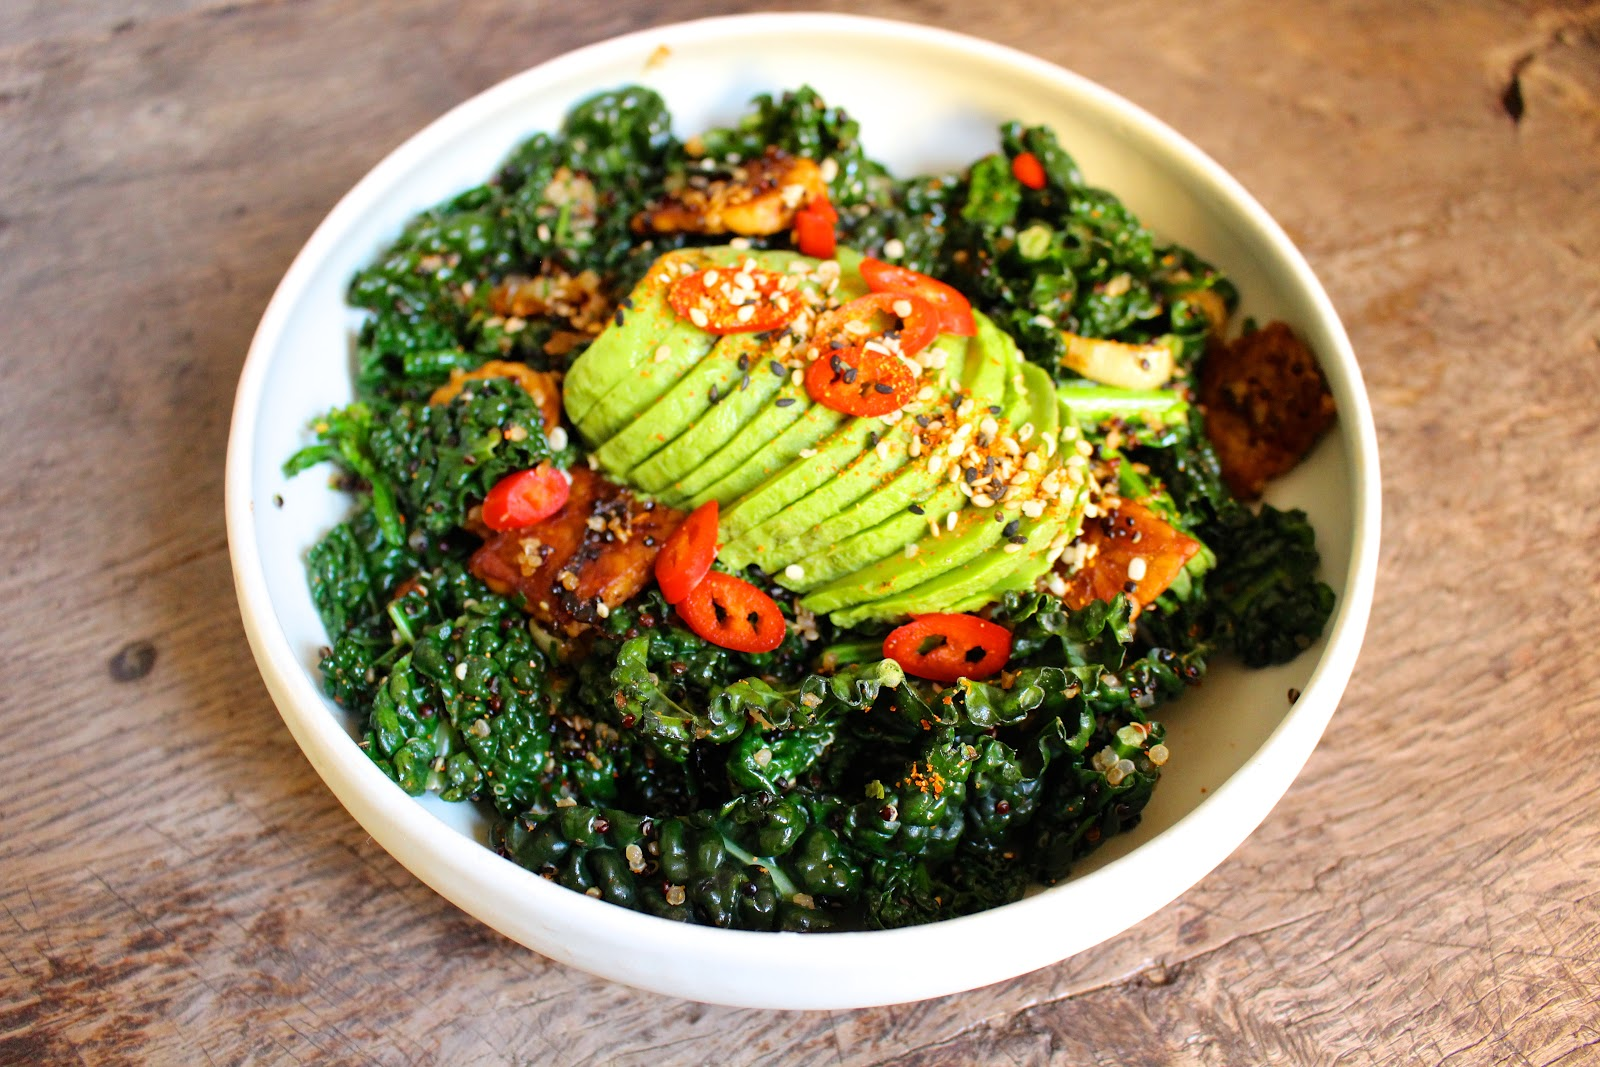 Vegan cavolo nero & tempeh stir fry with avocado